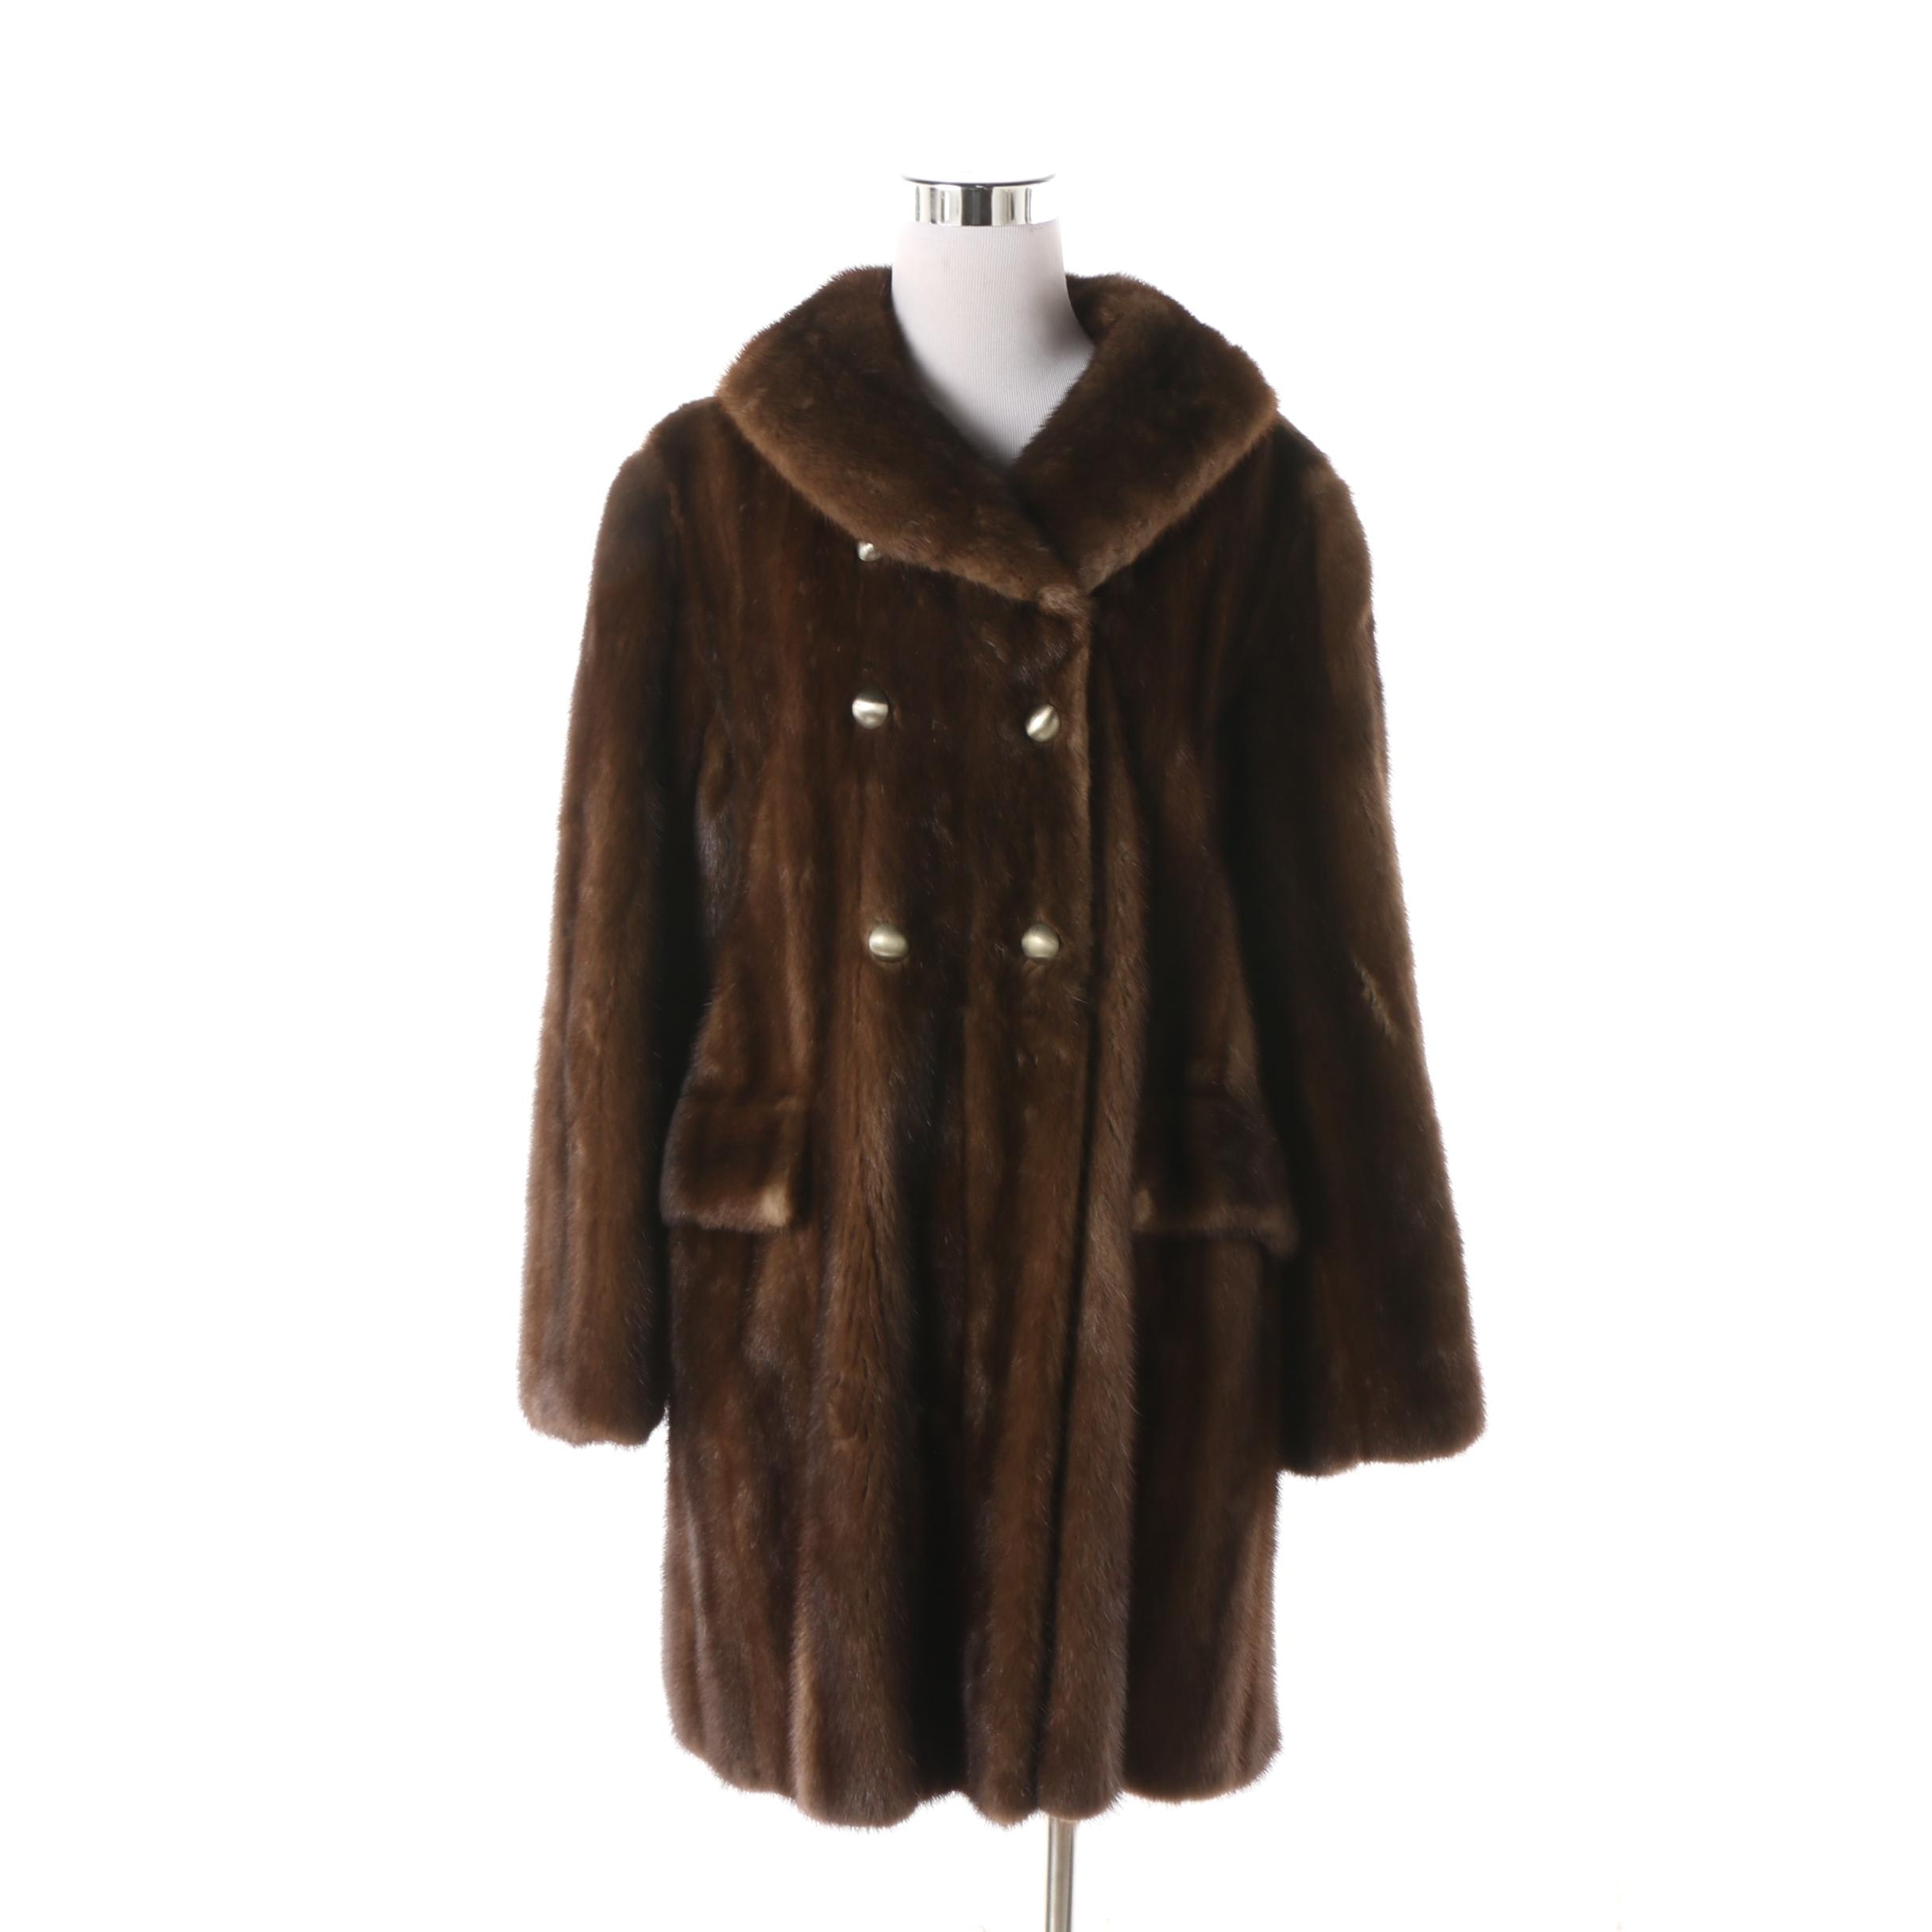 Women's Circa 1960s Bonnie Cashin for HBA Furs Double-Breasted Mink Fur Coat